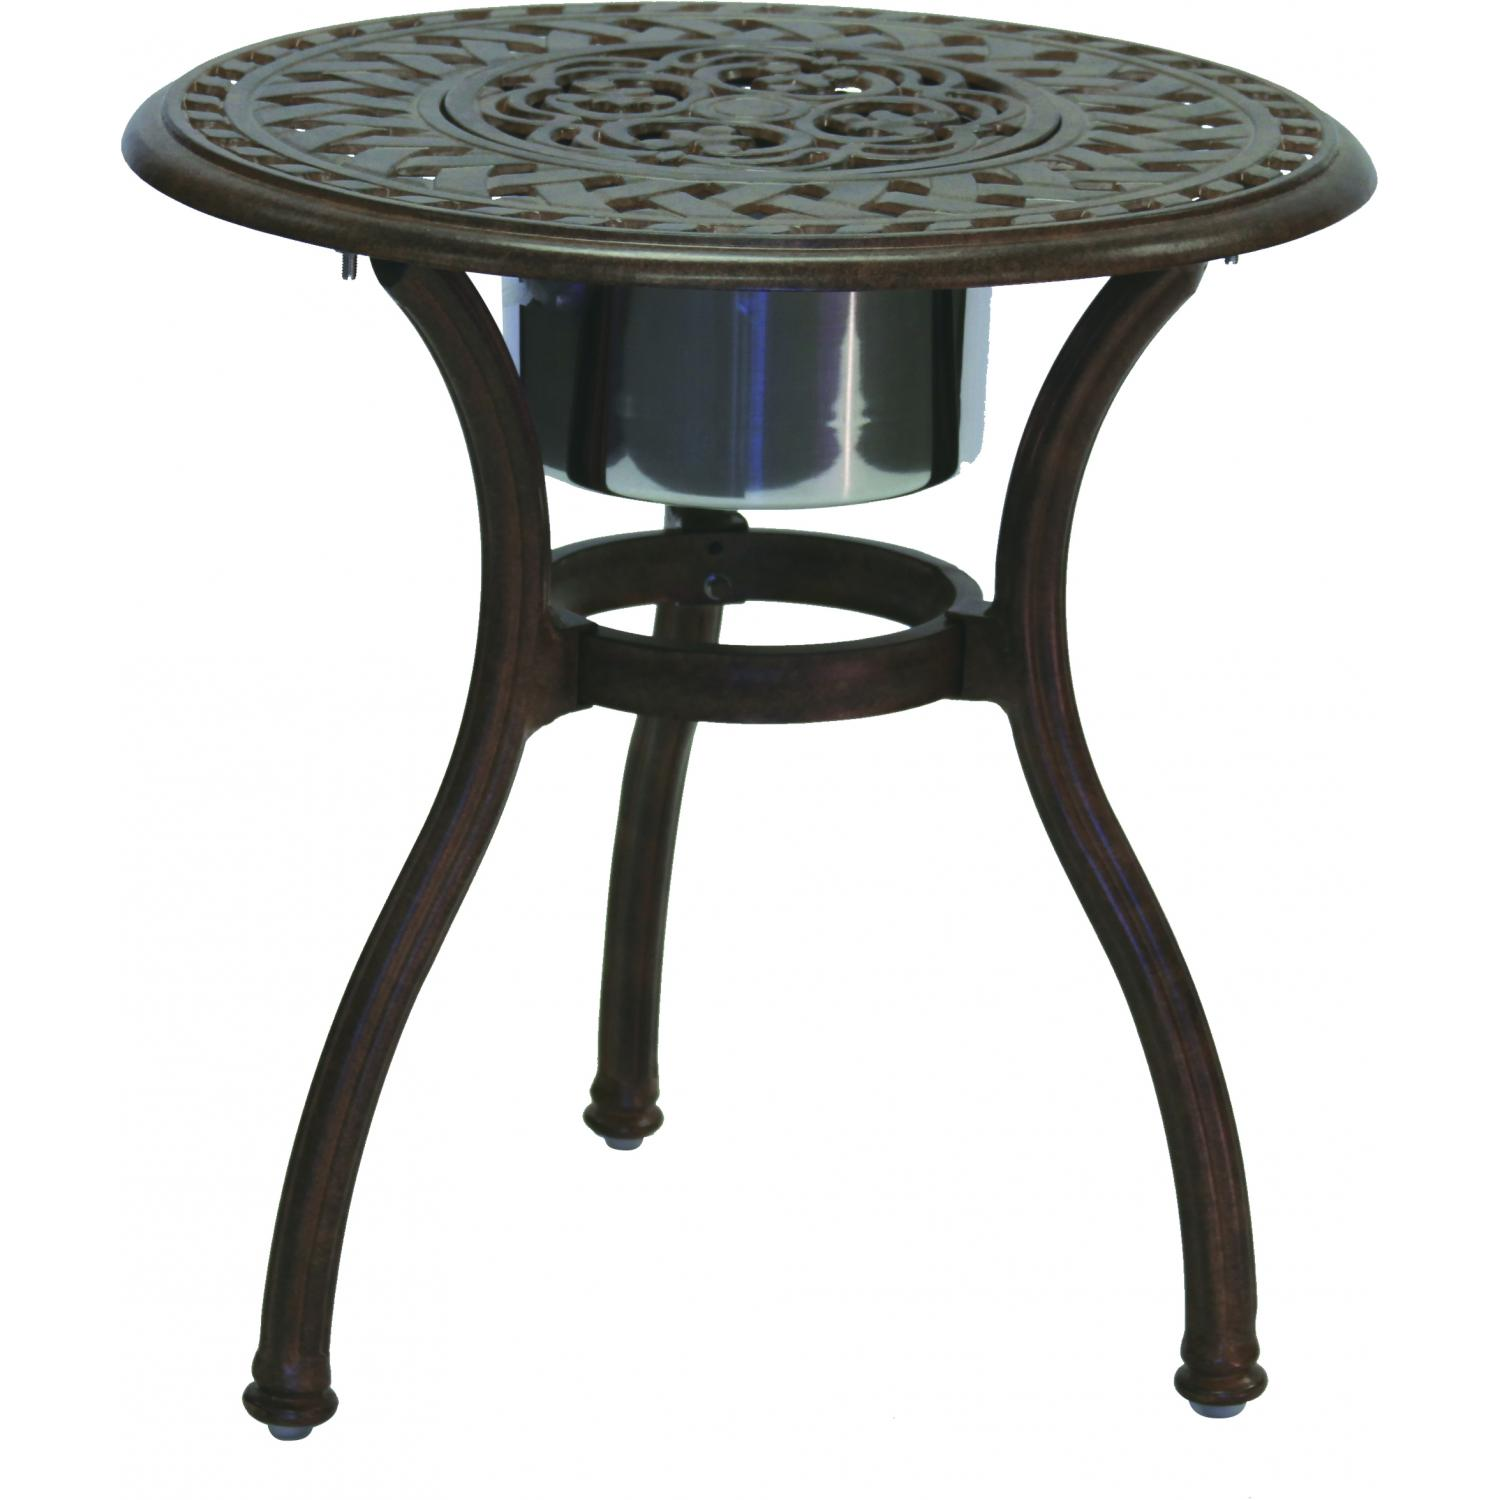 darlee series cast aluminum patio end table with ice bucket outdoor side insert antique bronze bbq guys target ott round battery operated mini lamps turquoise lamp cool home decor